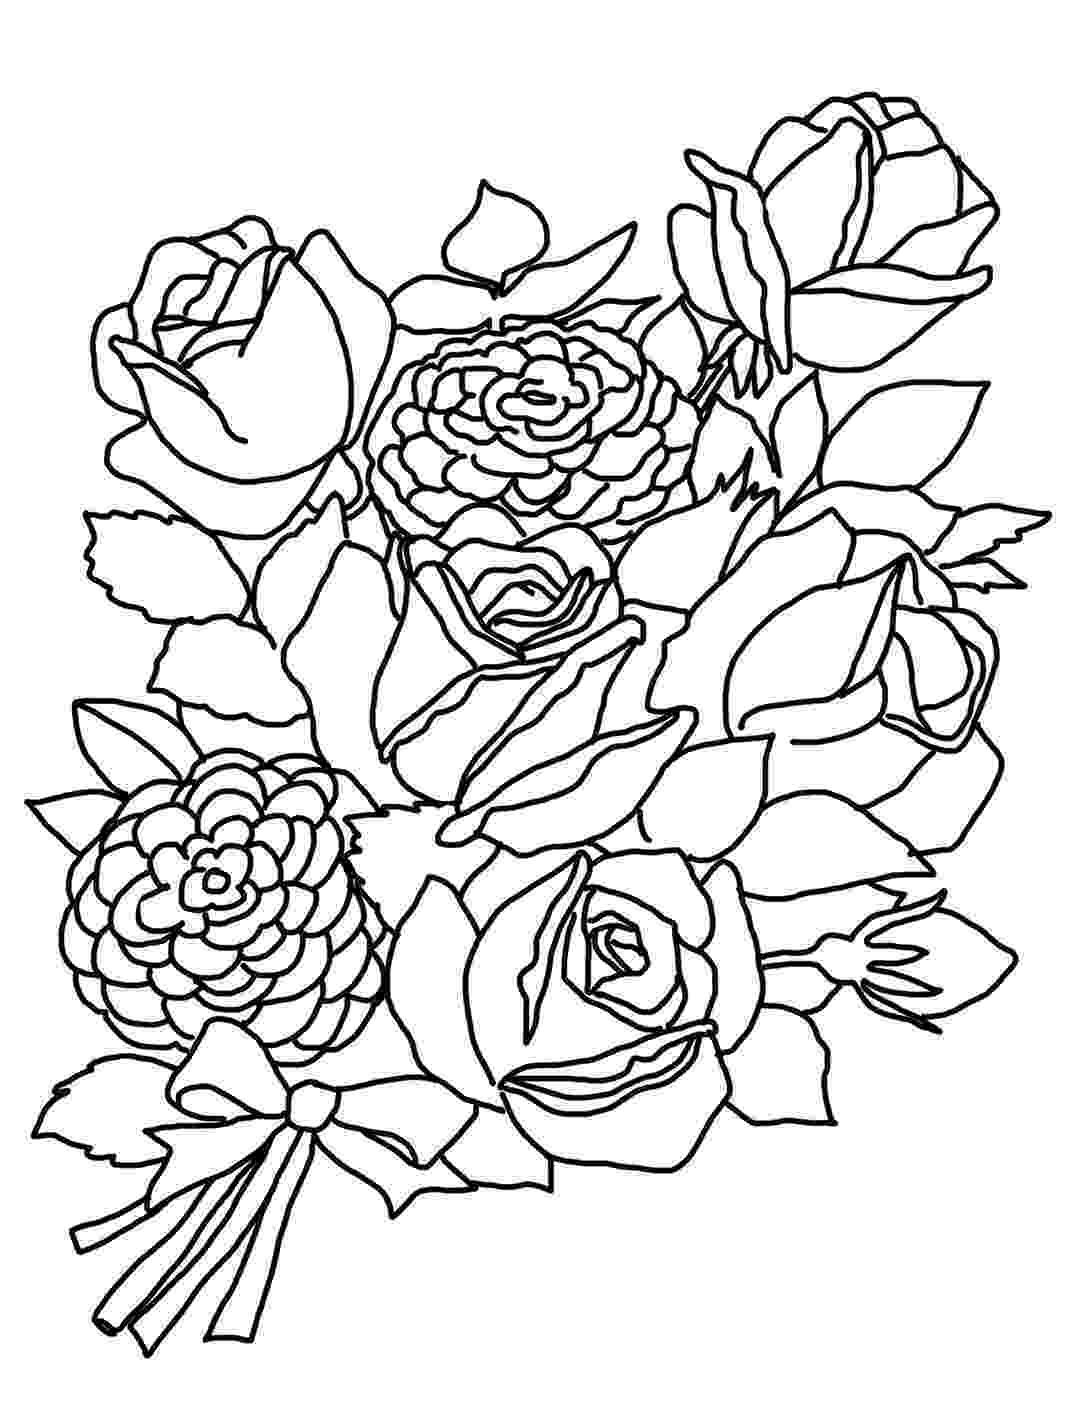 rose flower coloring pages flower coloring pages flower coloring pages rose